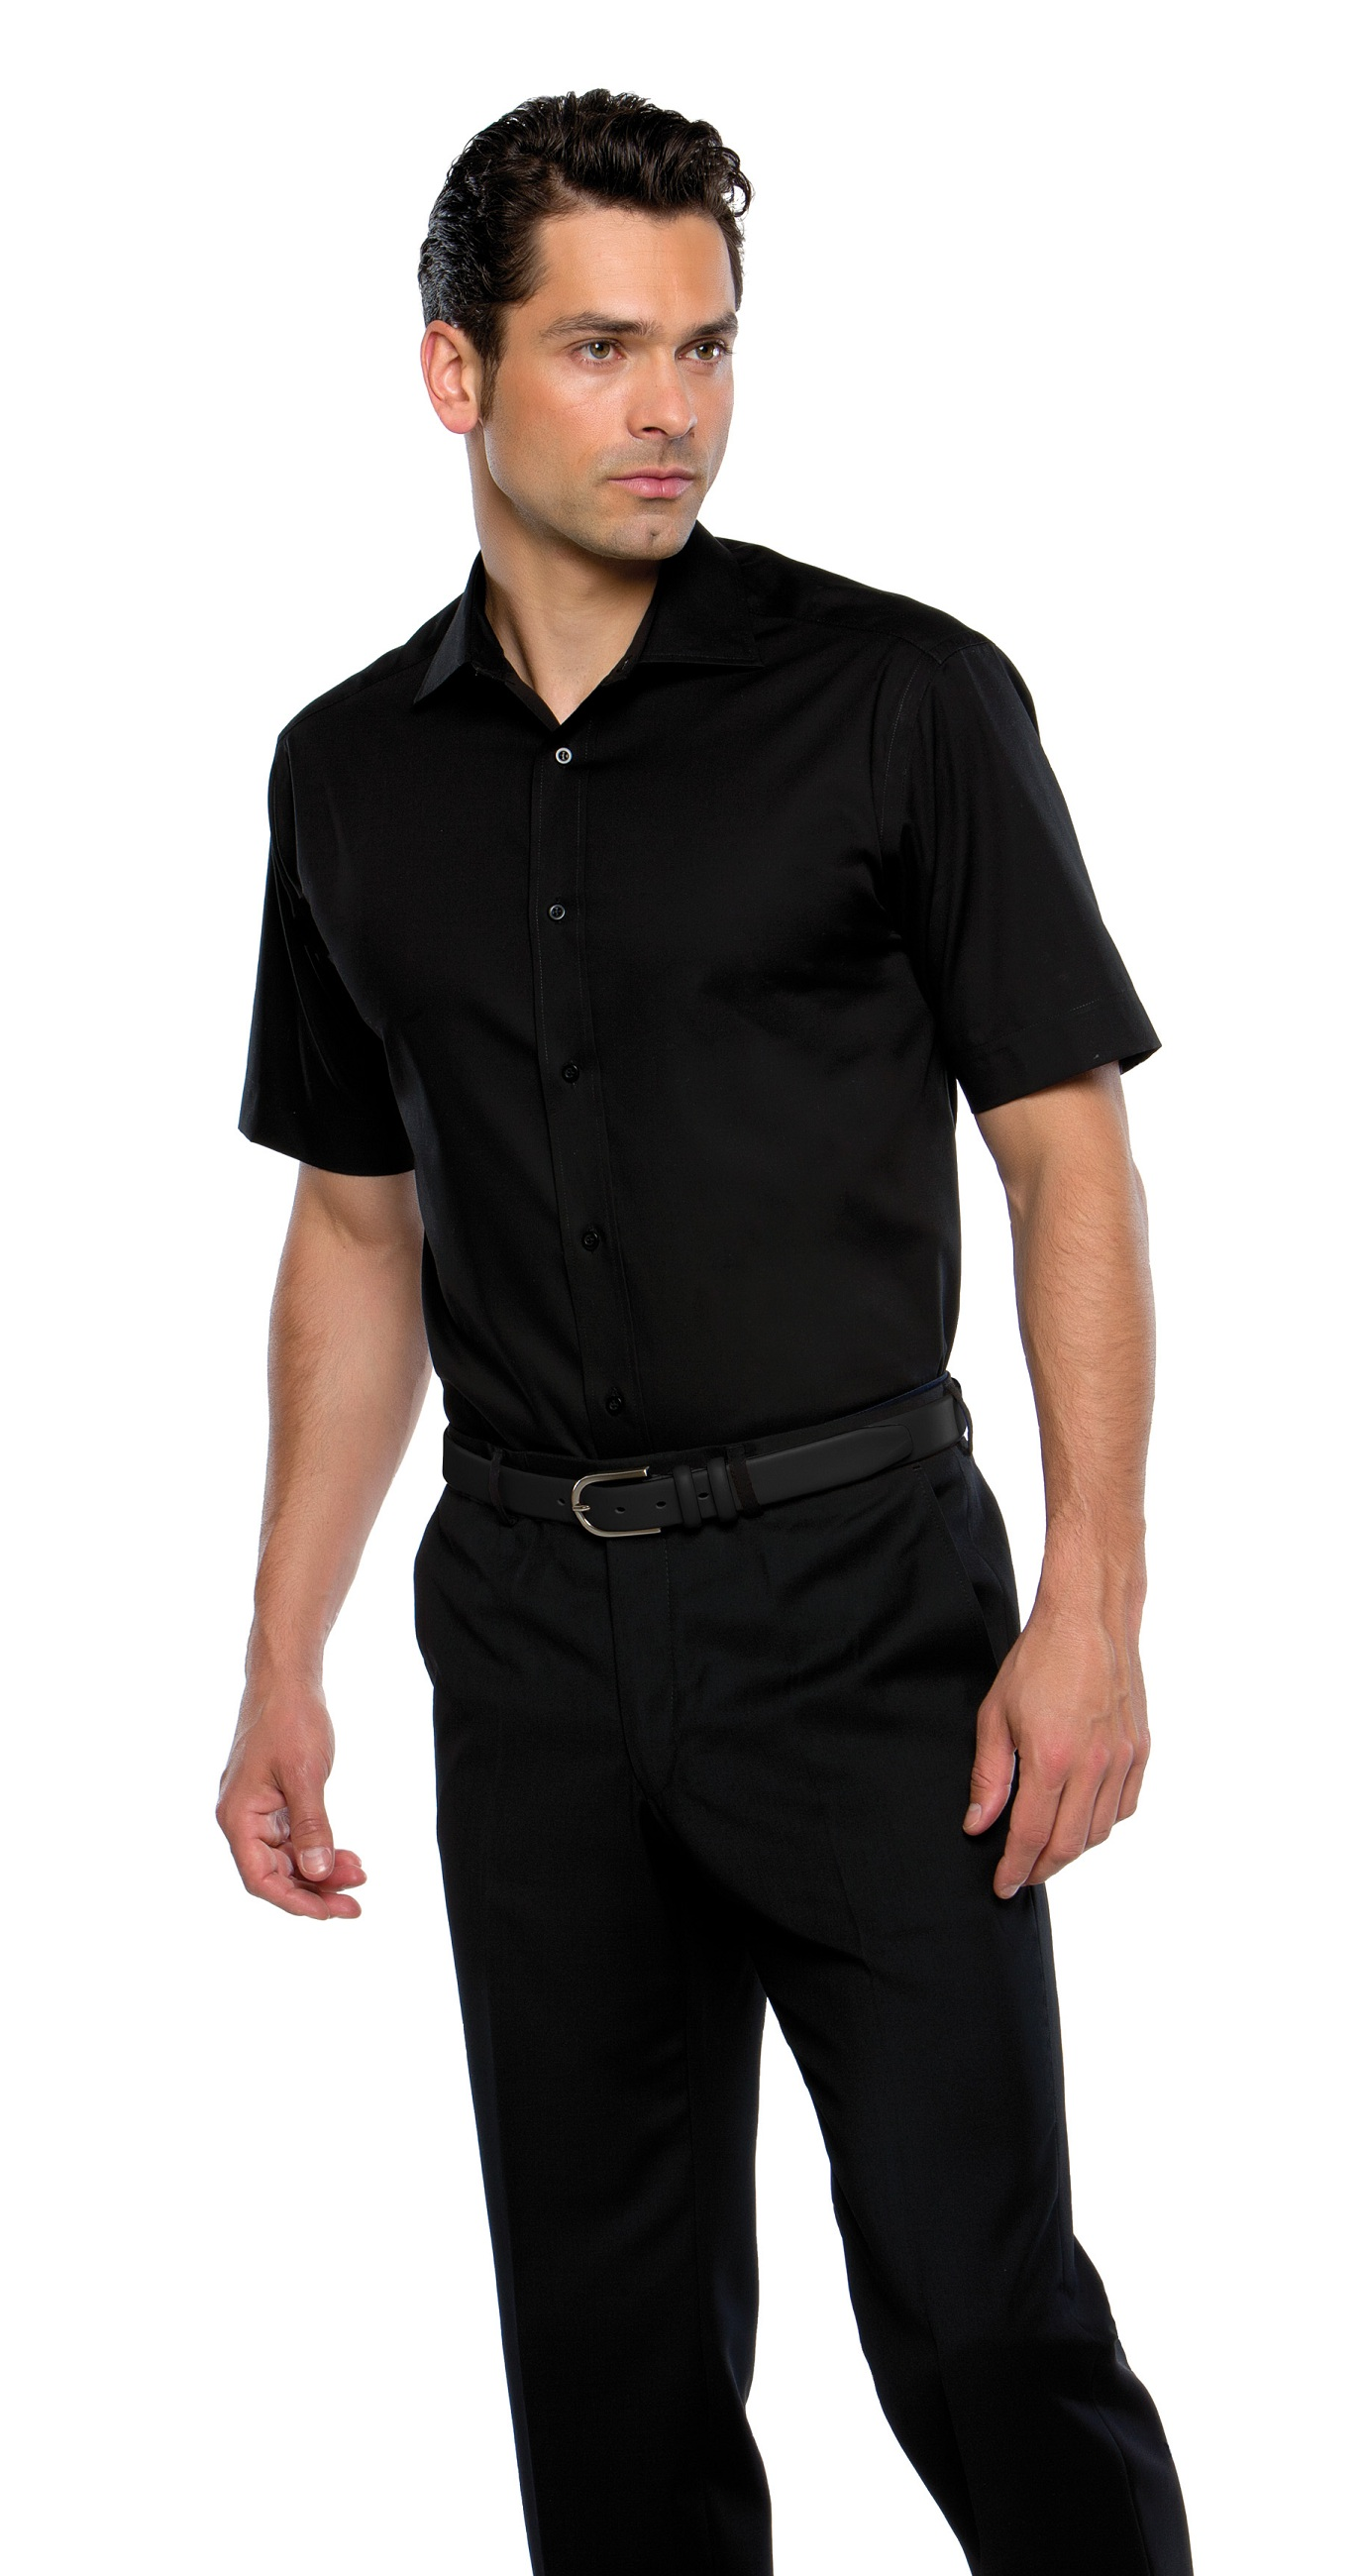 KK117 Kustom Kit Executive Oxford Shirt Short Sleeve